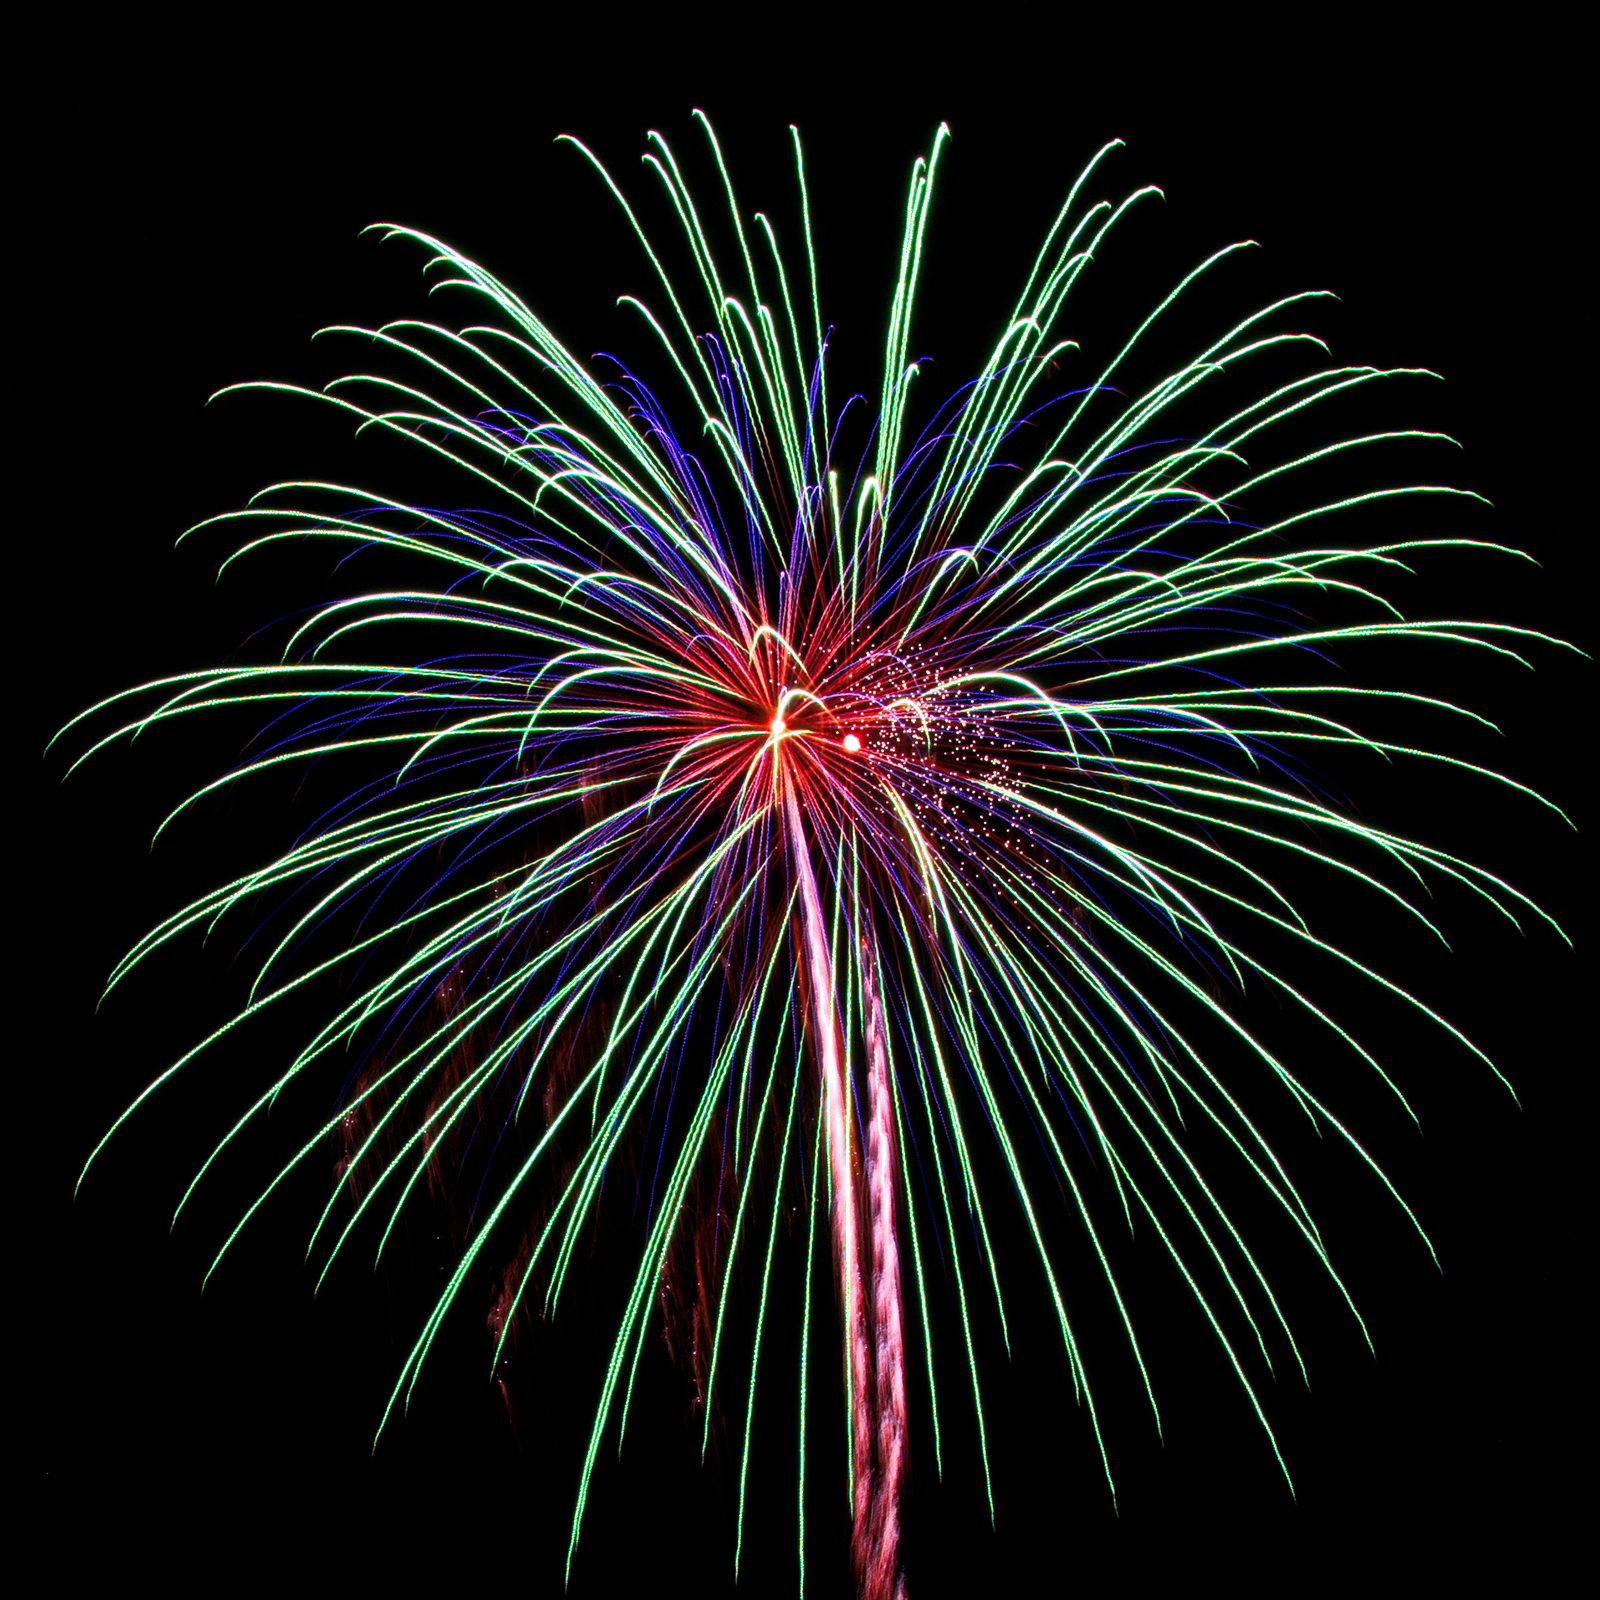 Cape Cod Fireworks: Magnificent multicolor burst